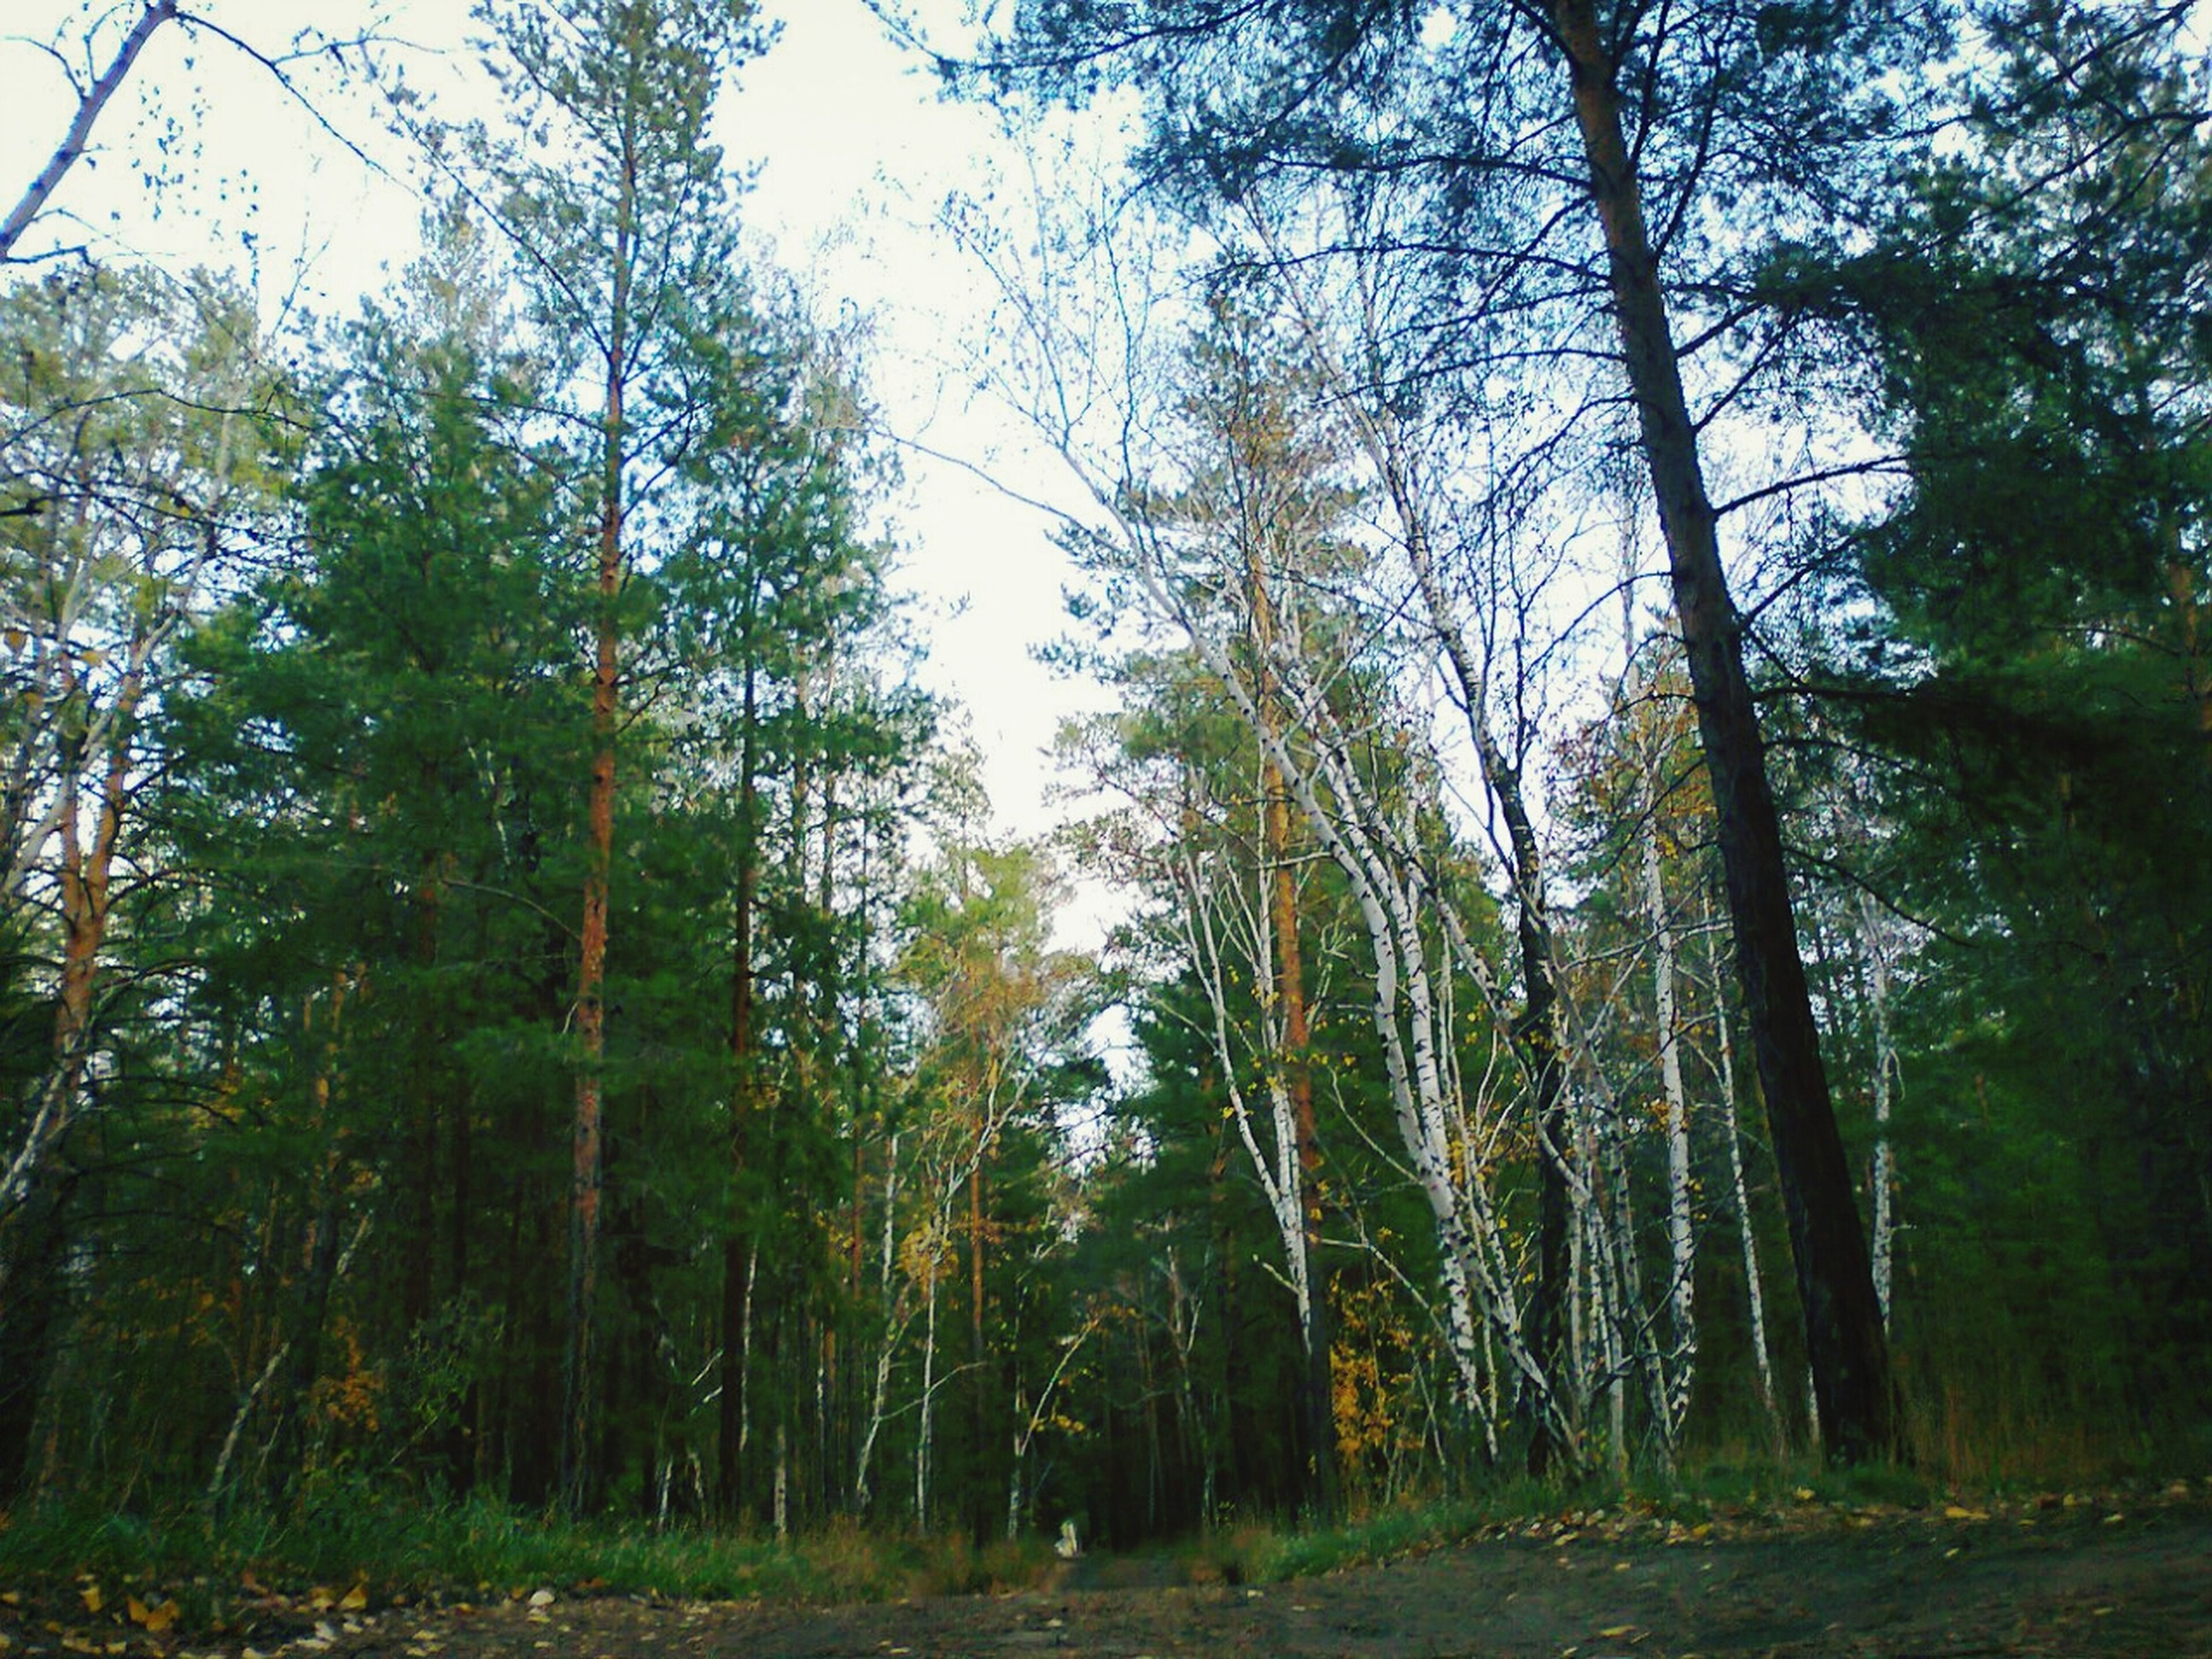 tree, forest, tranquility, growth, tree trunk, woodland, tranquil scene, nature, beauty in nature, low angle view, scenics, branch, non-urban scene, day, sky, outdoors, tall - high, no people, green color, landscape